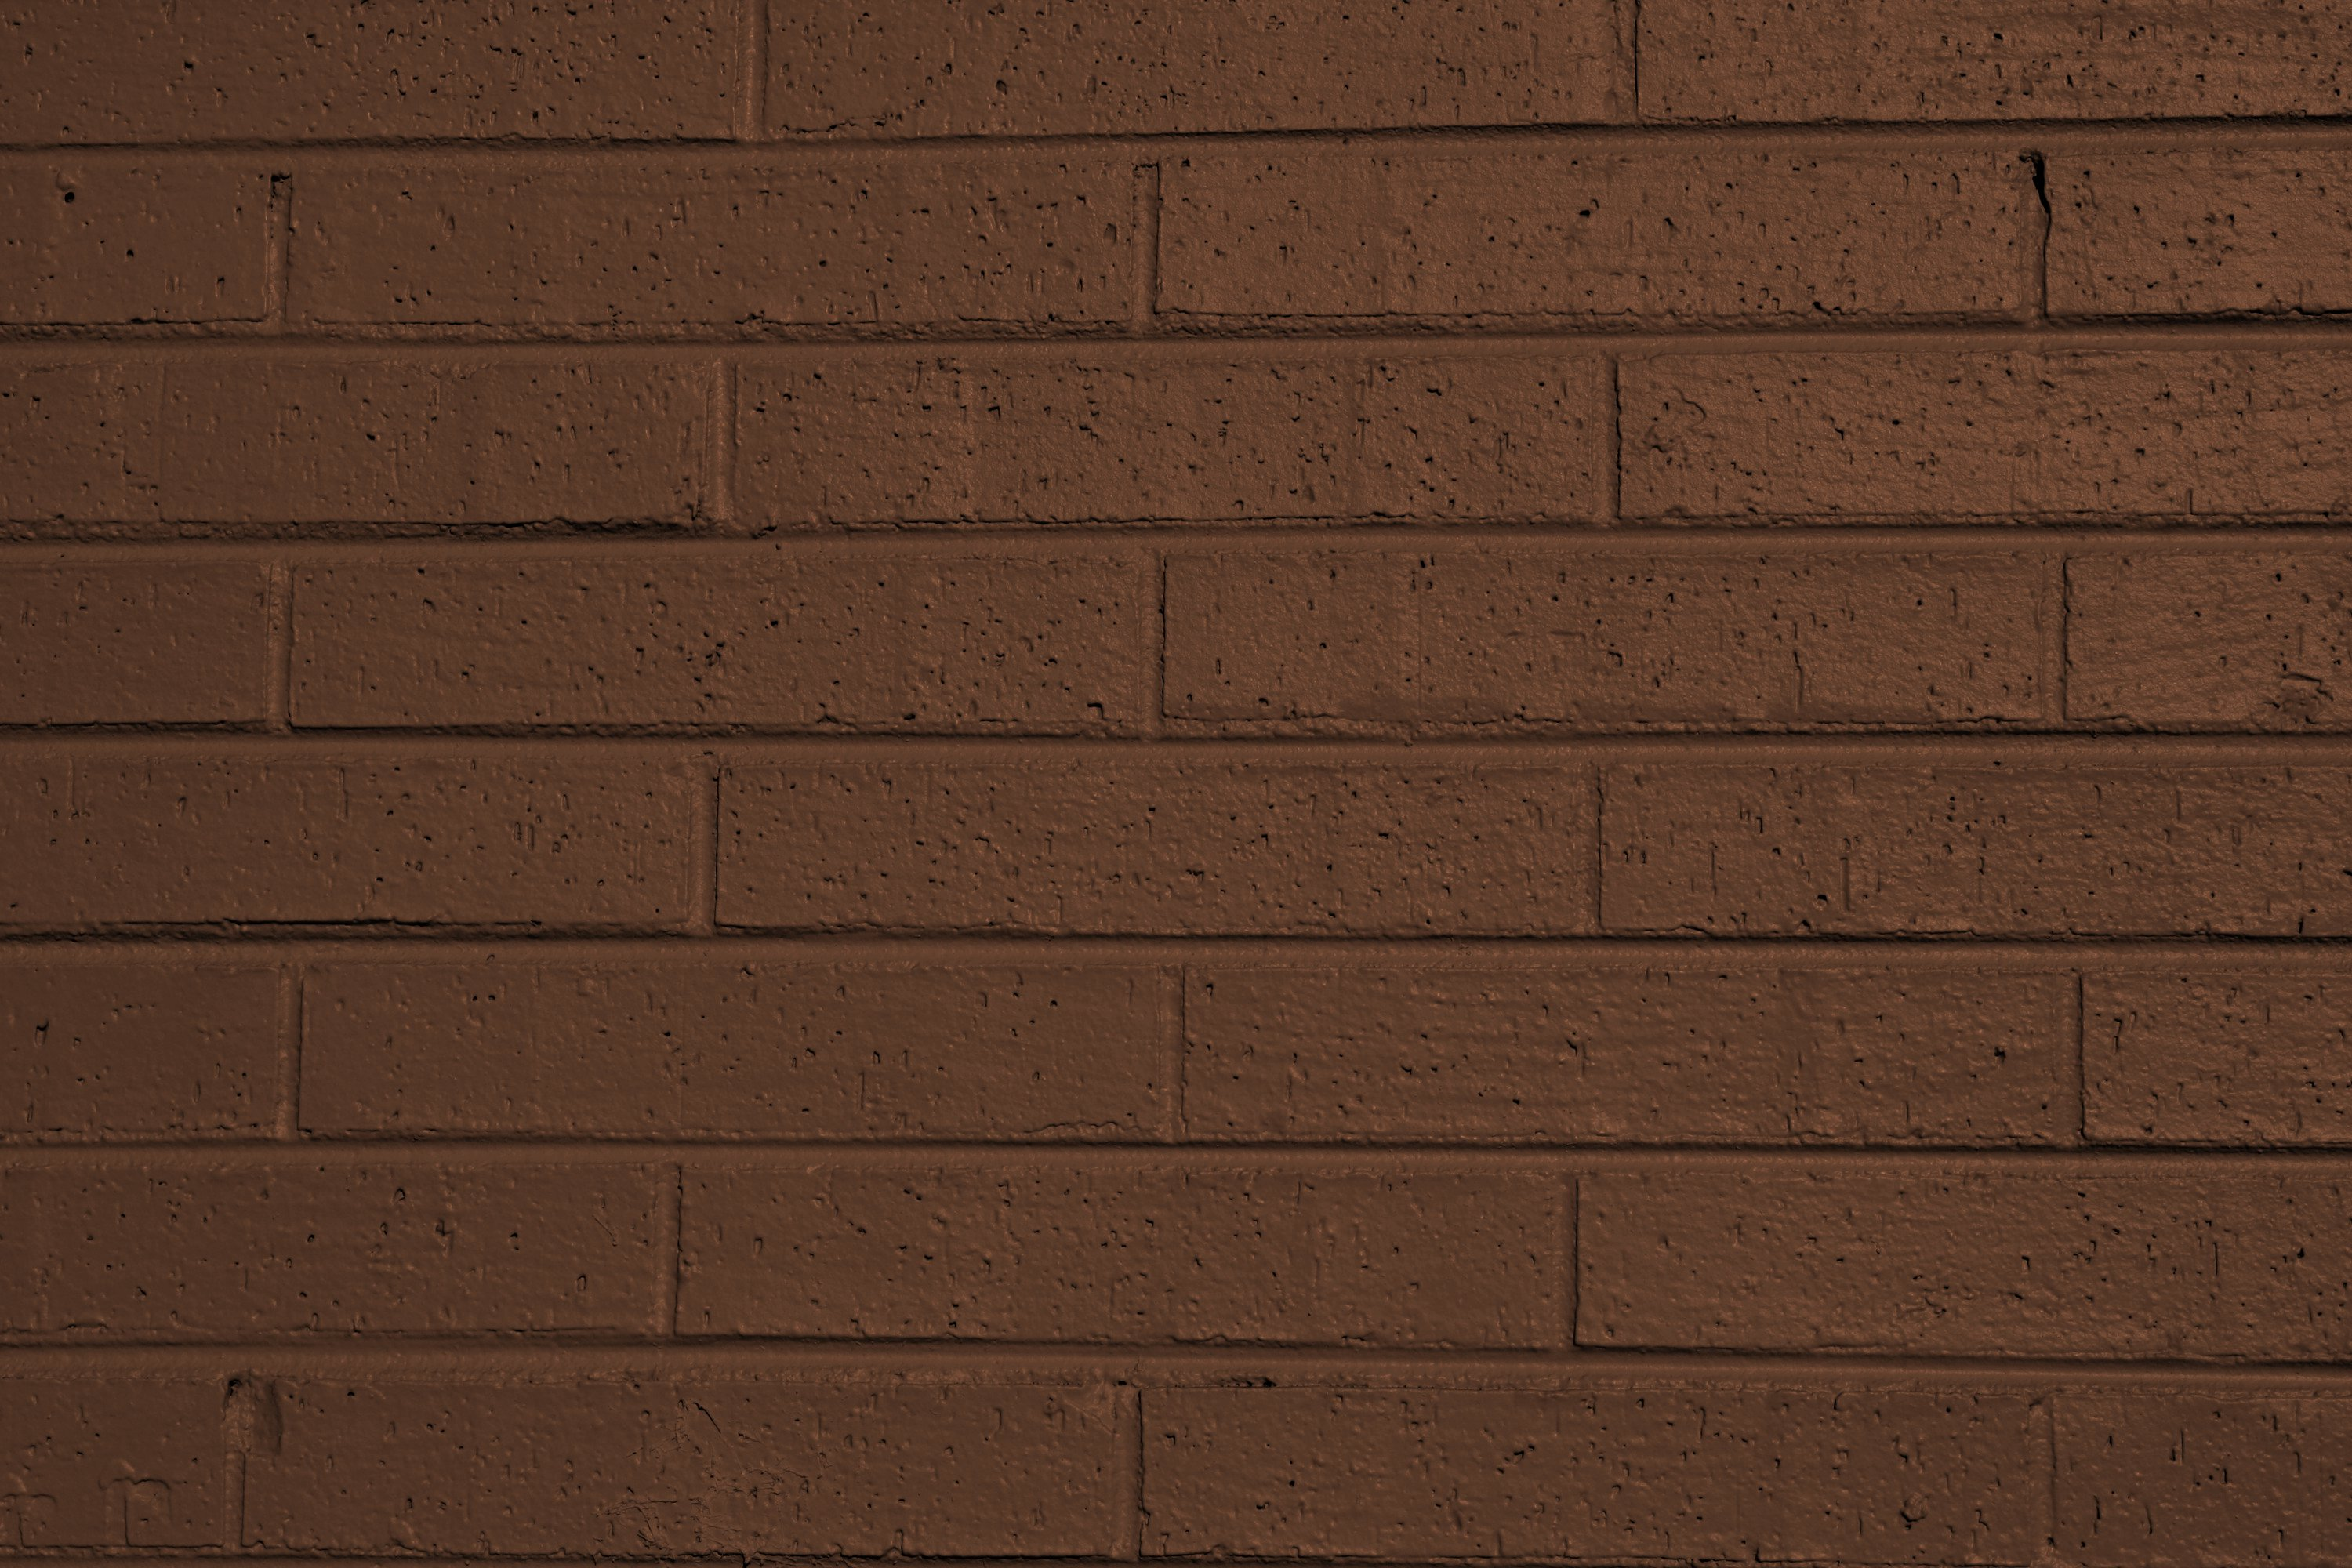 Design Painted Brick Texture brown painted brick wall texture picture free photograph photos texture